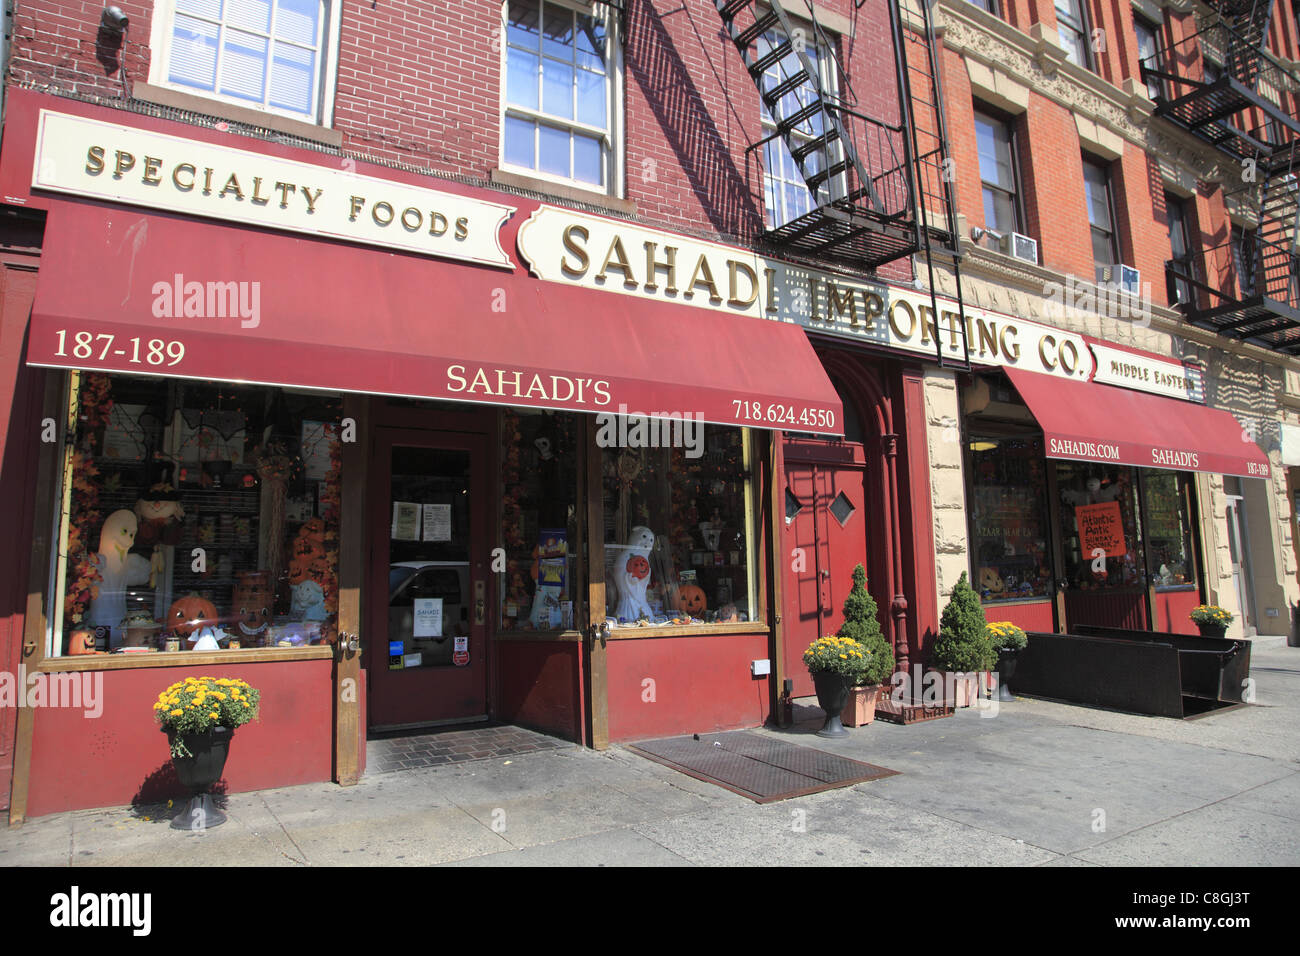 Sahadi Importing Company, Middle Eastern section of Atlantic Avenue, Cobble Hill, Brooklyn, New York City, USA - Stock Image